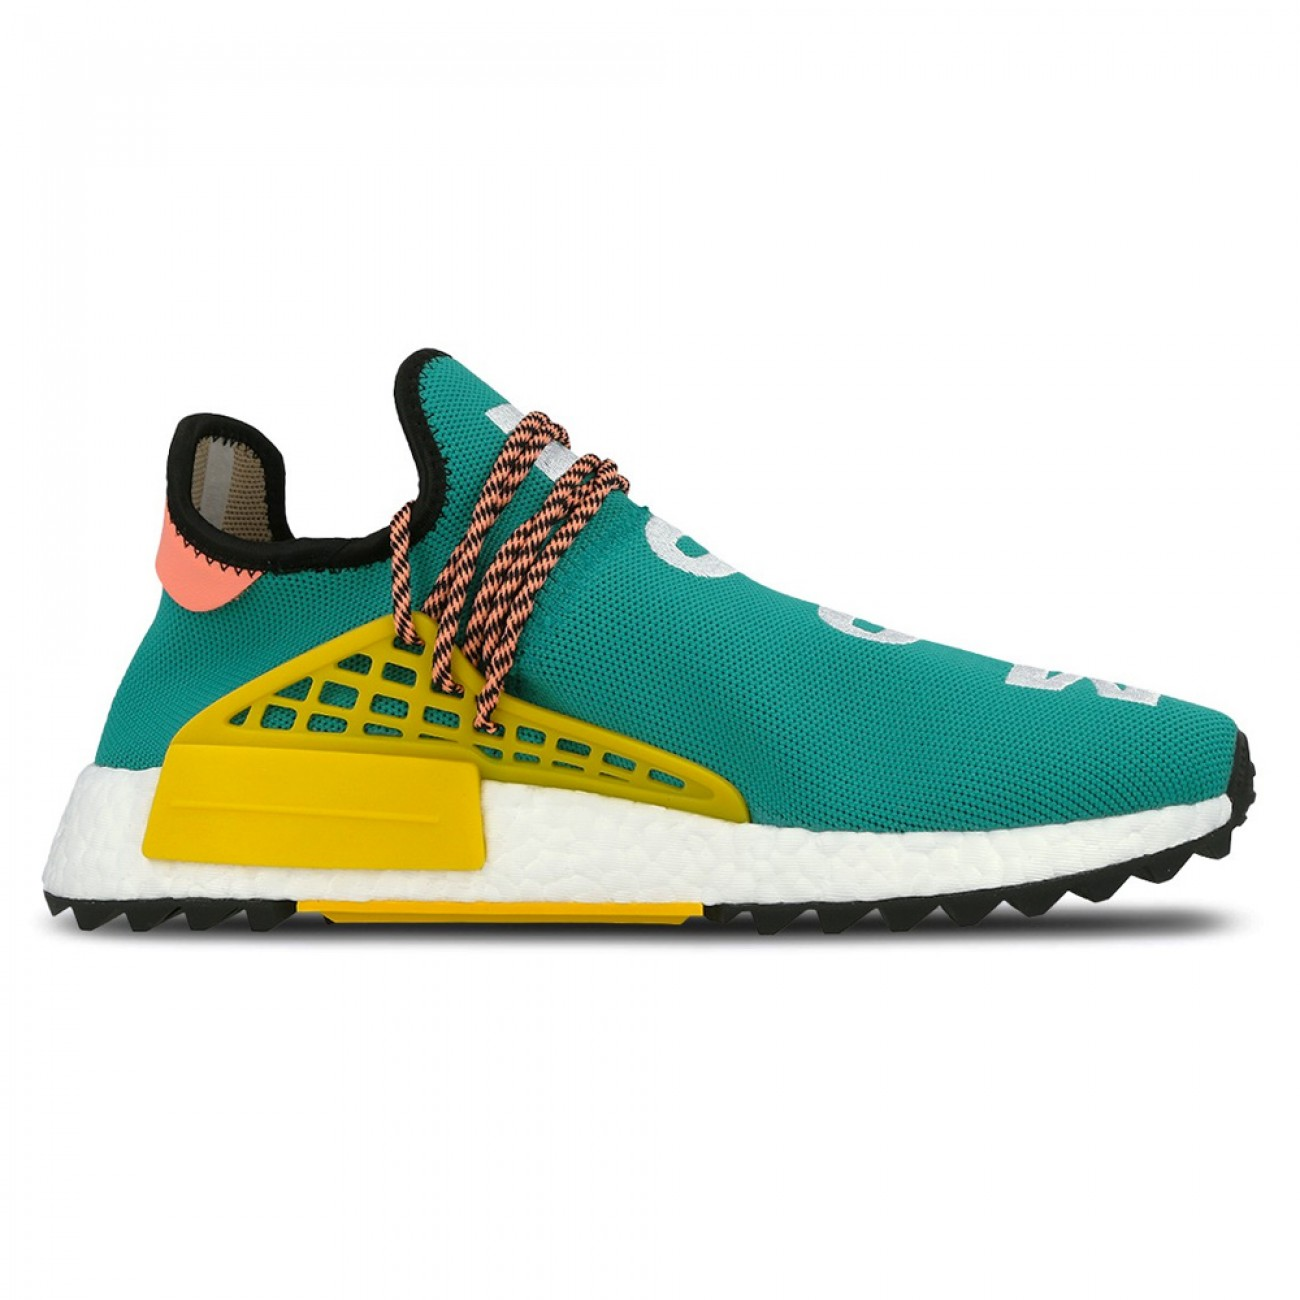 Details about Adidas x Pharrell Williams Human Race NMD Trail Sun Glow Hu Clouds Teal AC7188